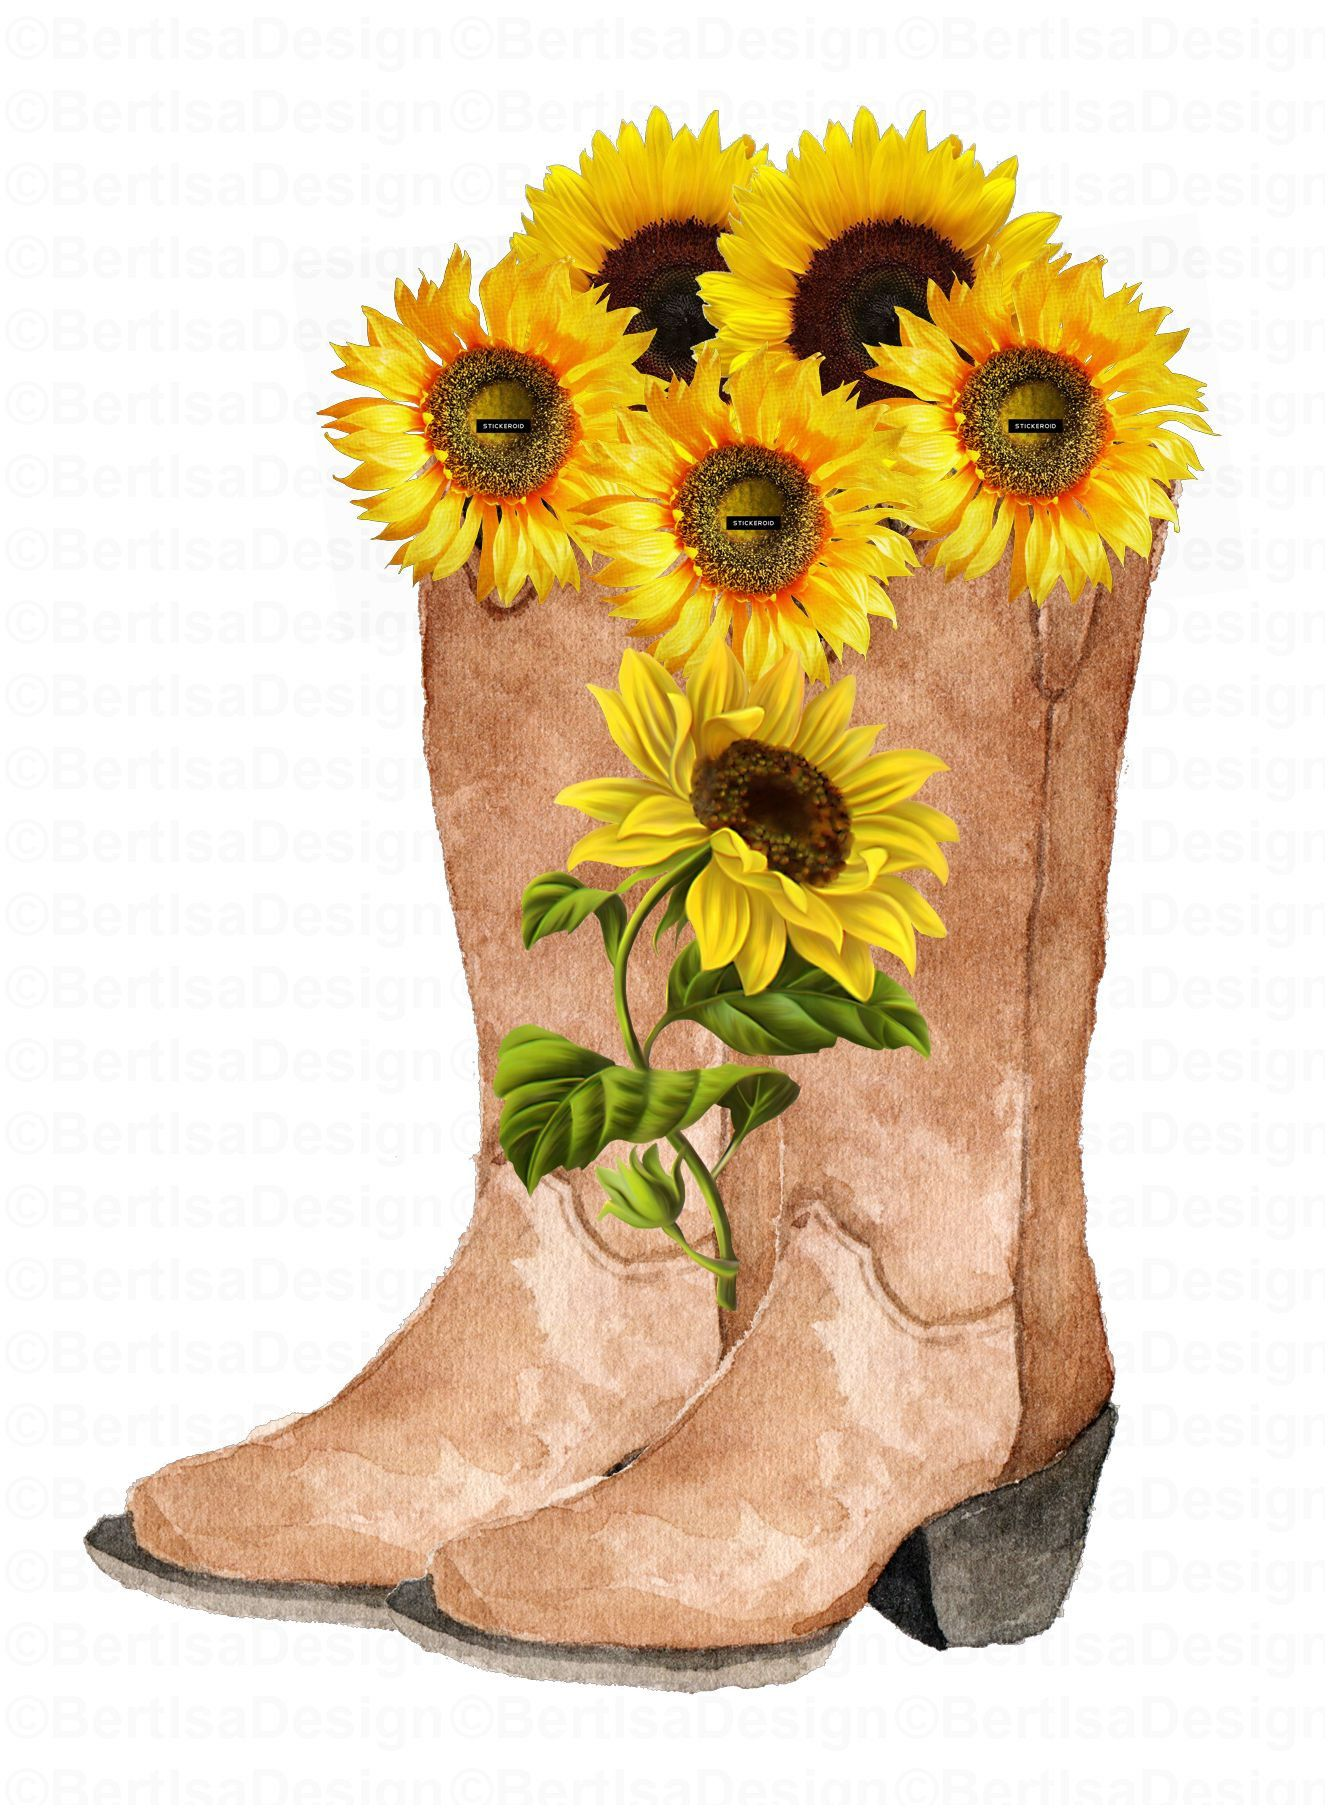 Cowgirl Boots Sunflower Cowgirl Boots Sublimation Etsy Sunflower Cowgirl Boots Cowgirl Boots Floral Watercolor